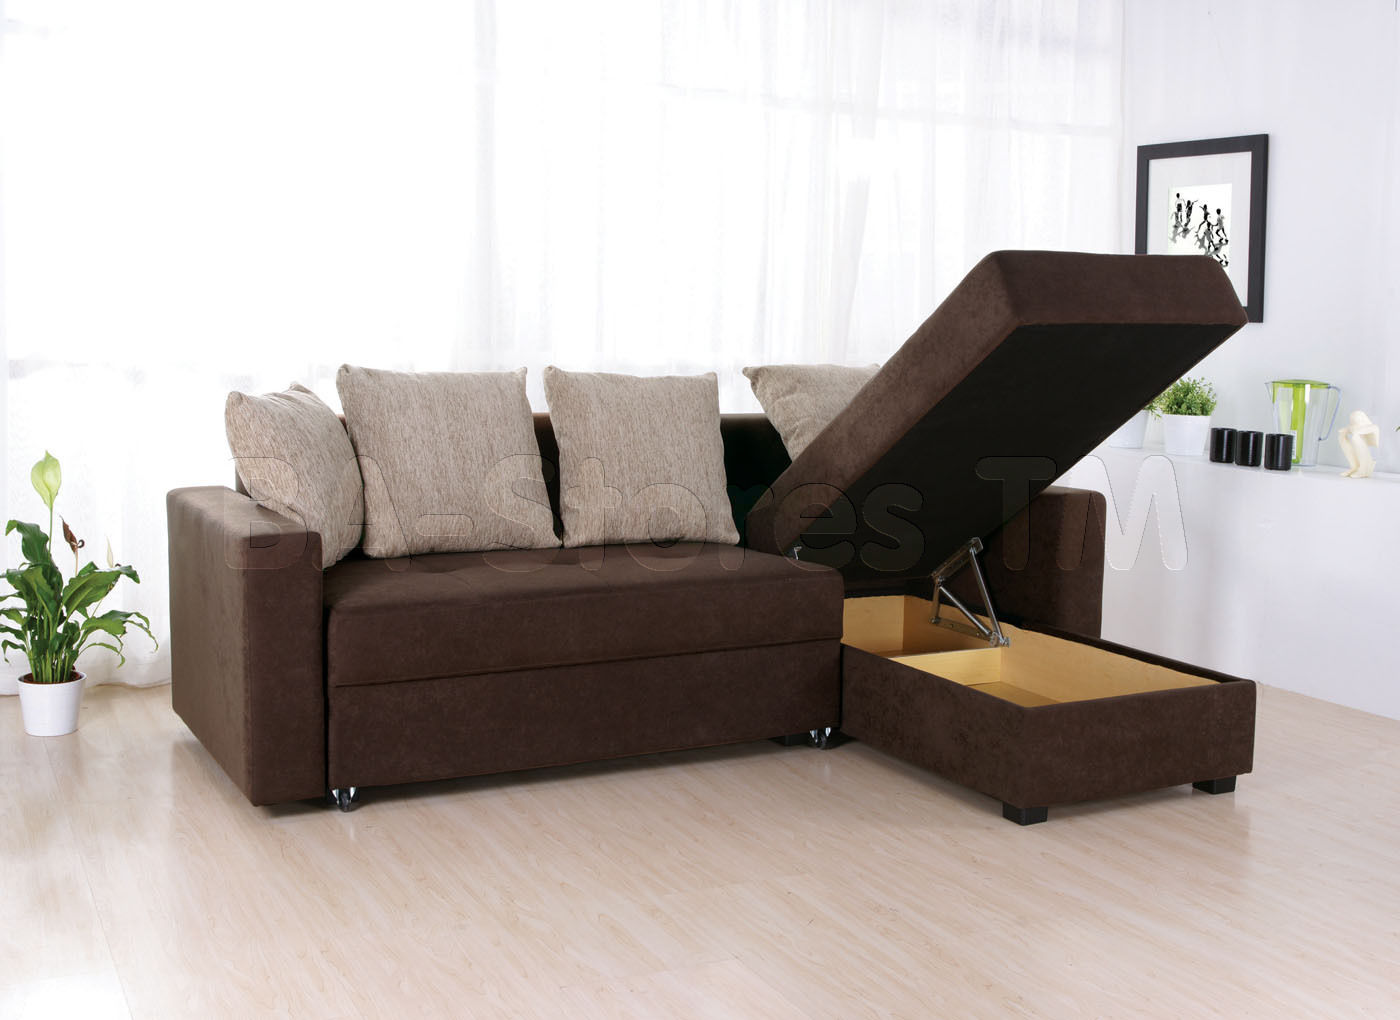 cool used sofa set for sale inspiration-Amazing Used sofa Set for Sale Photograph